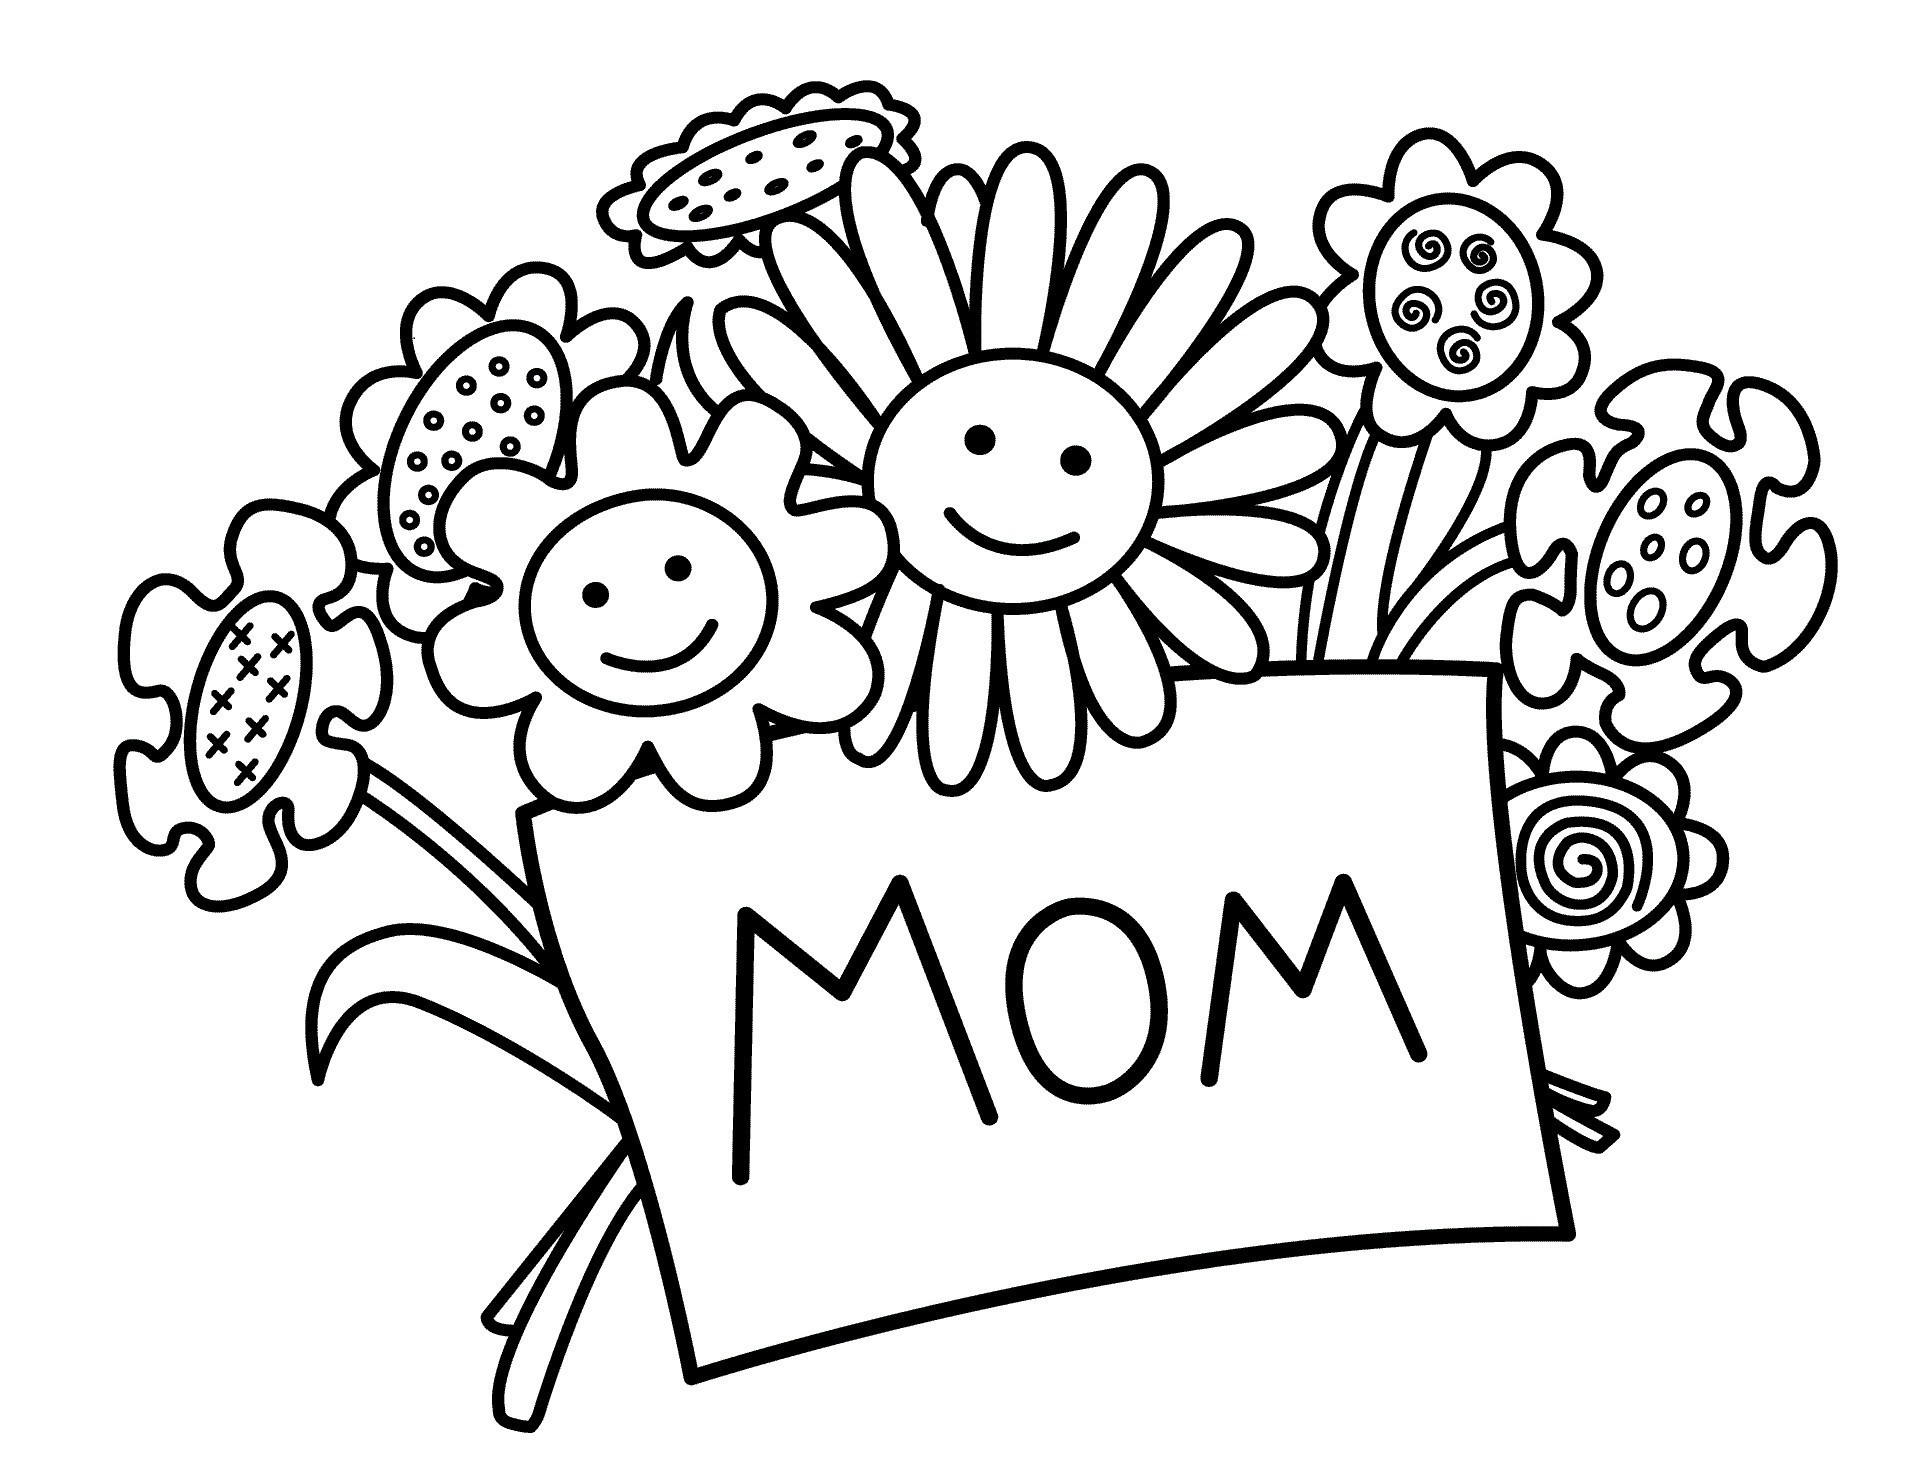 Free Mothers Day Coloring Pages - Nocrc - Free Printable Mothers Day Coloring Cards